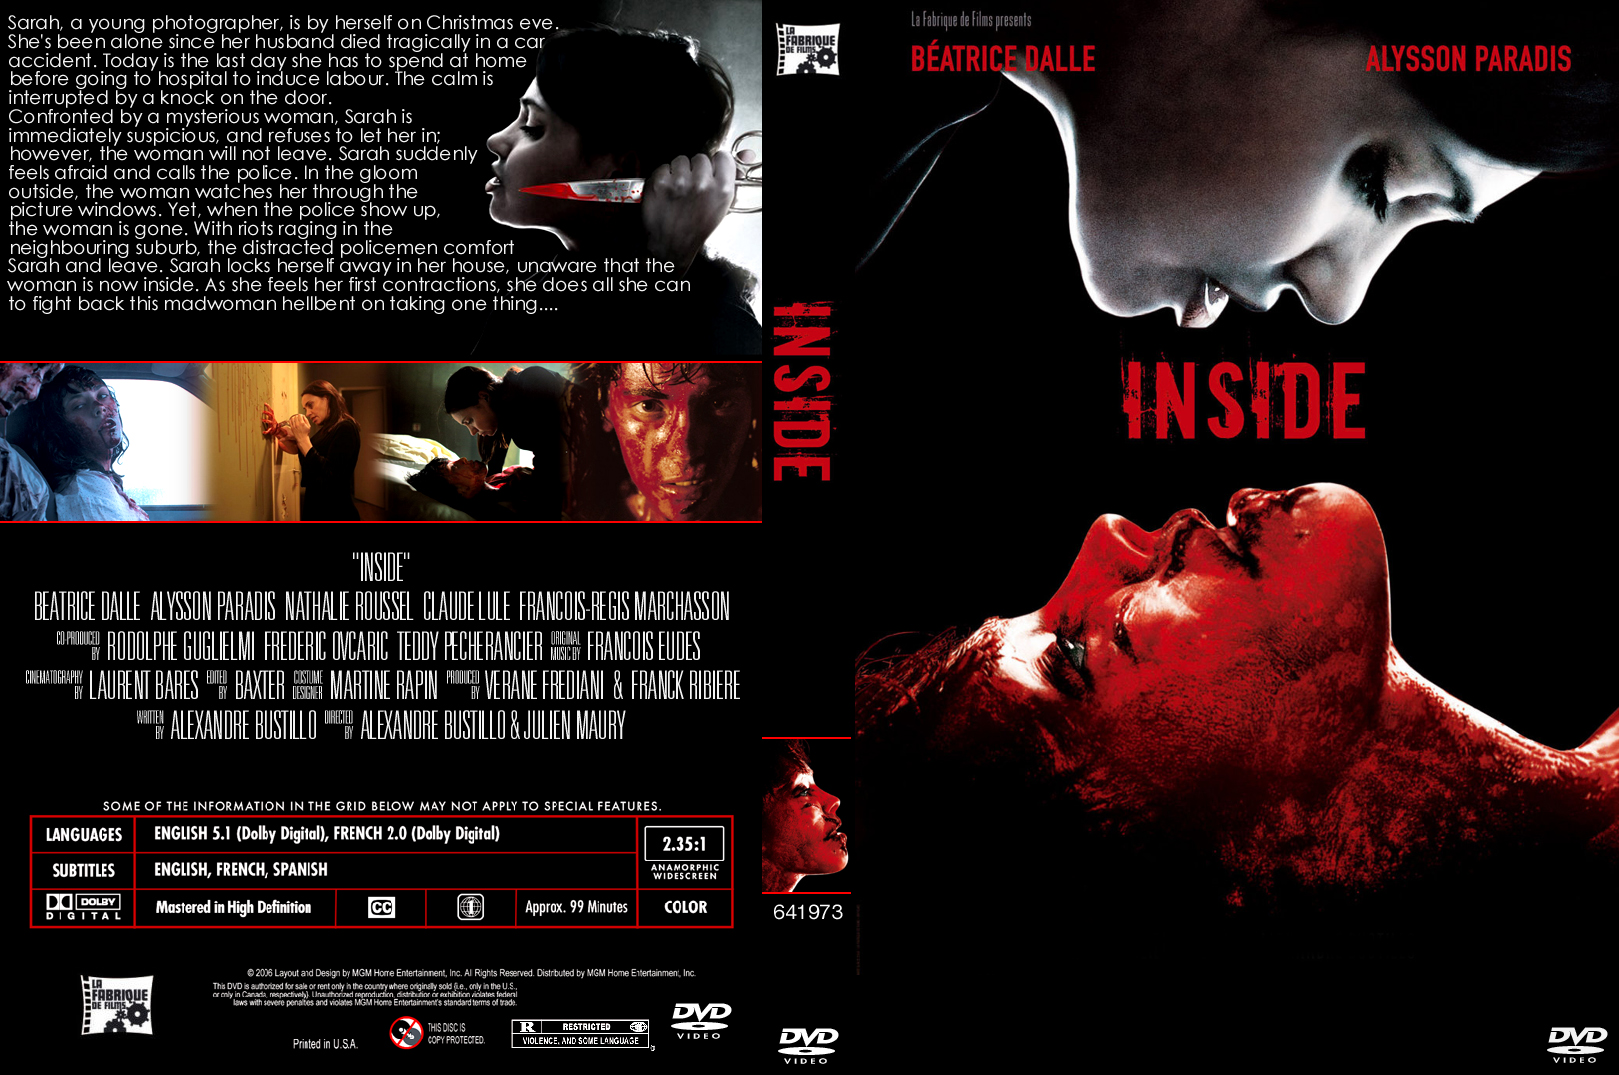 Covers box sk interieur high quality dvd blueray for Inside 2007 movie online free